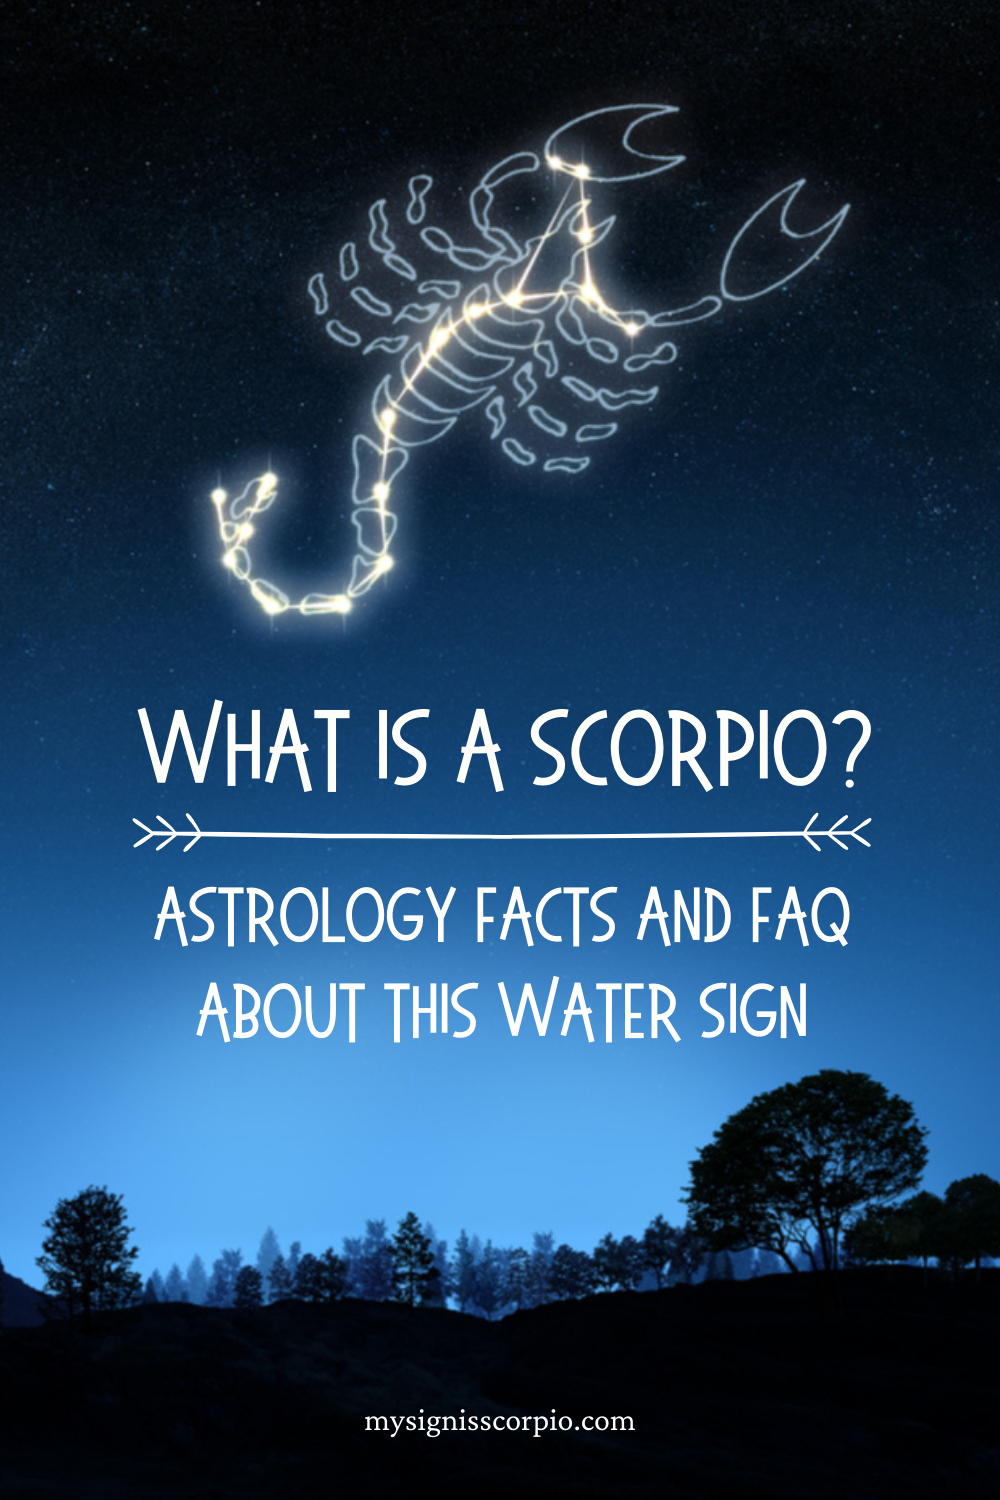 What Is A Scorpio_ Astrology Facts And FAQ About This Water Sign #scorpio #astrology #zodiac #scorpiosign